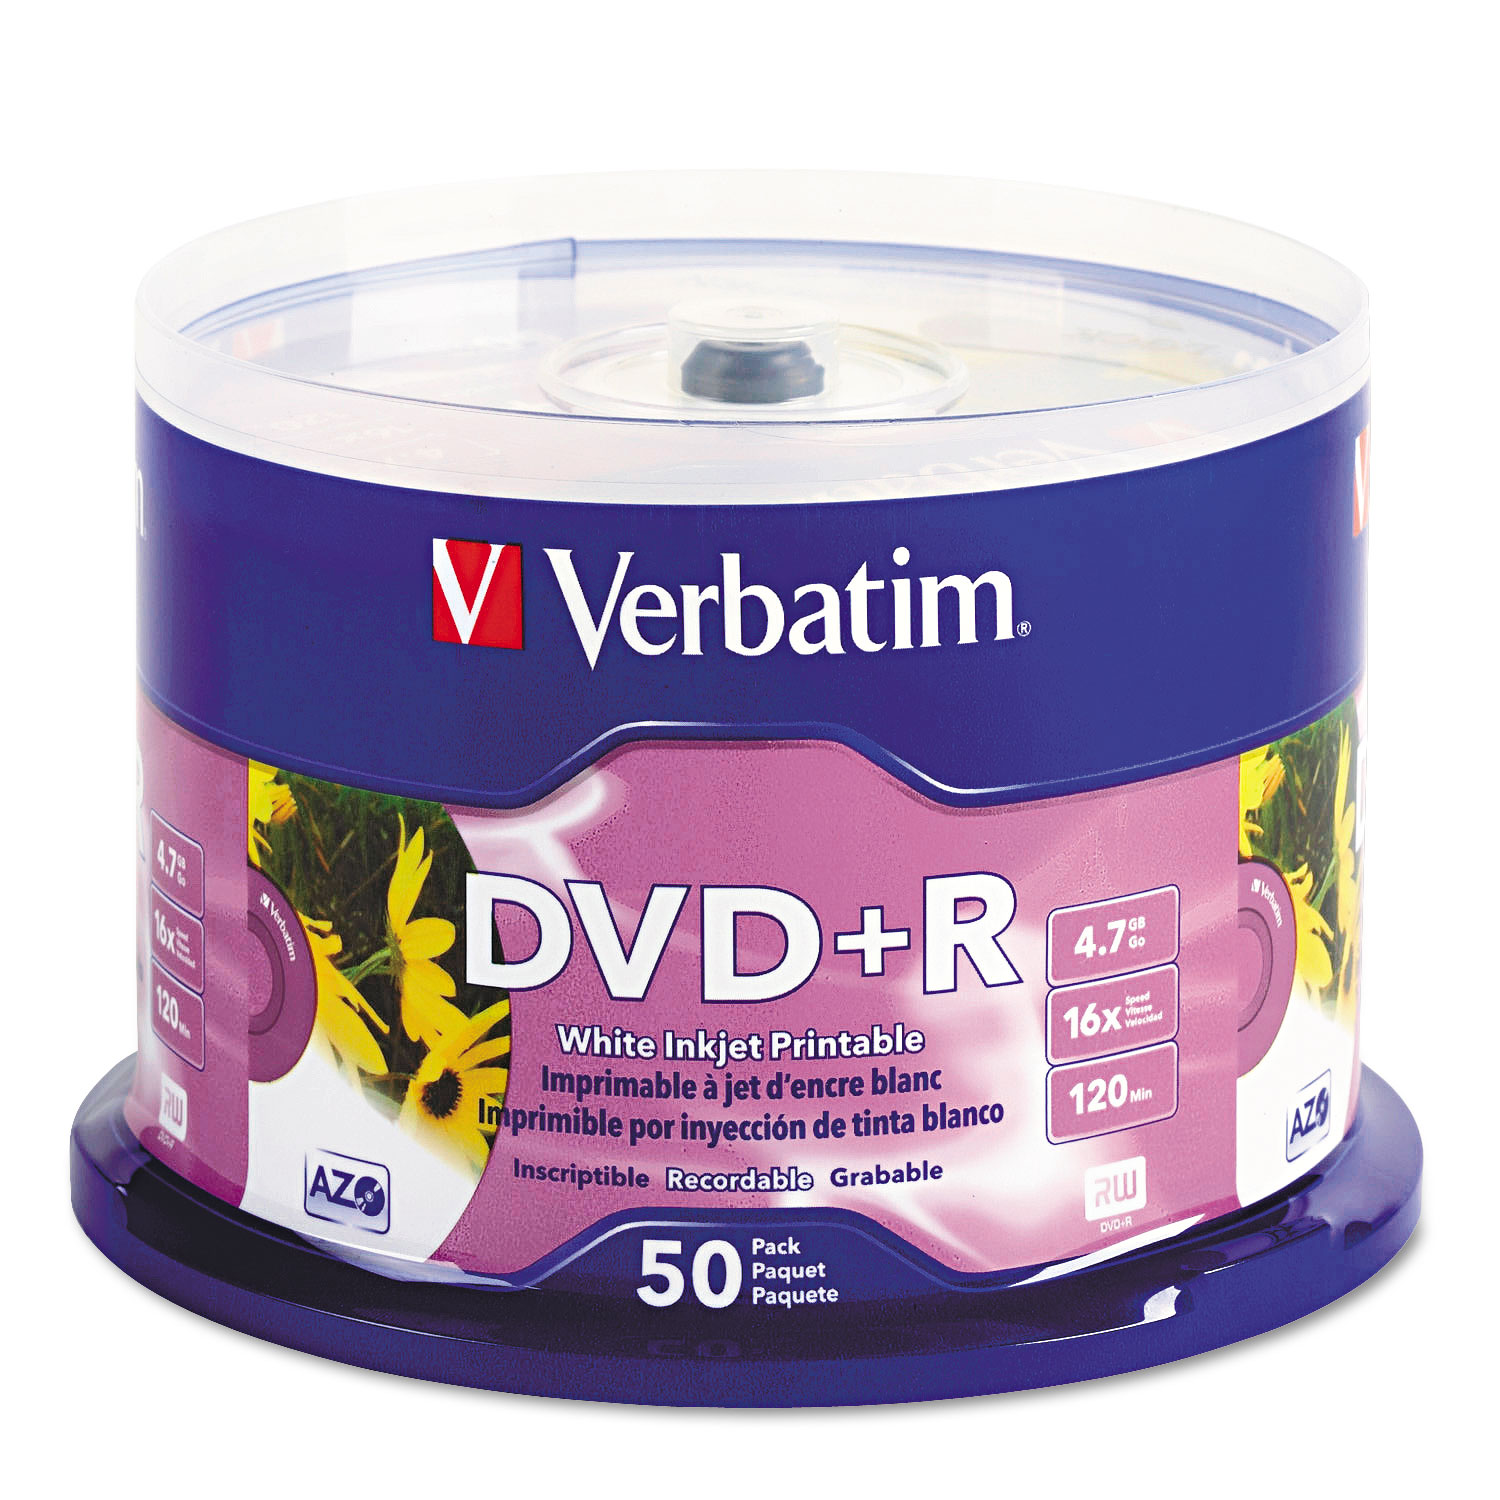 Versatile image pertaining to inkjet printable dvd